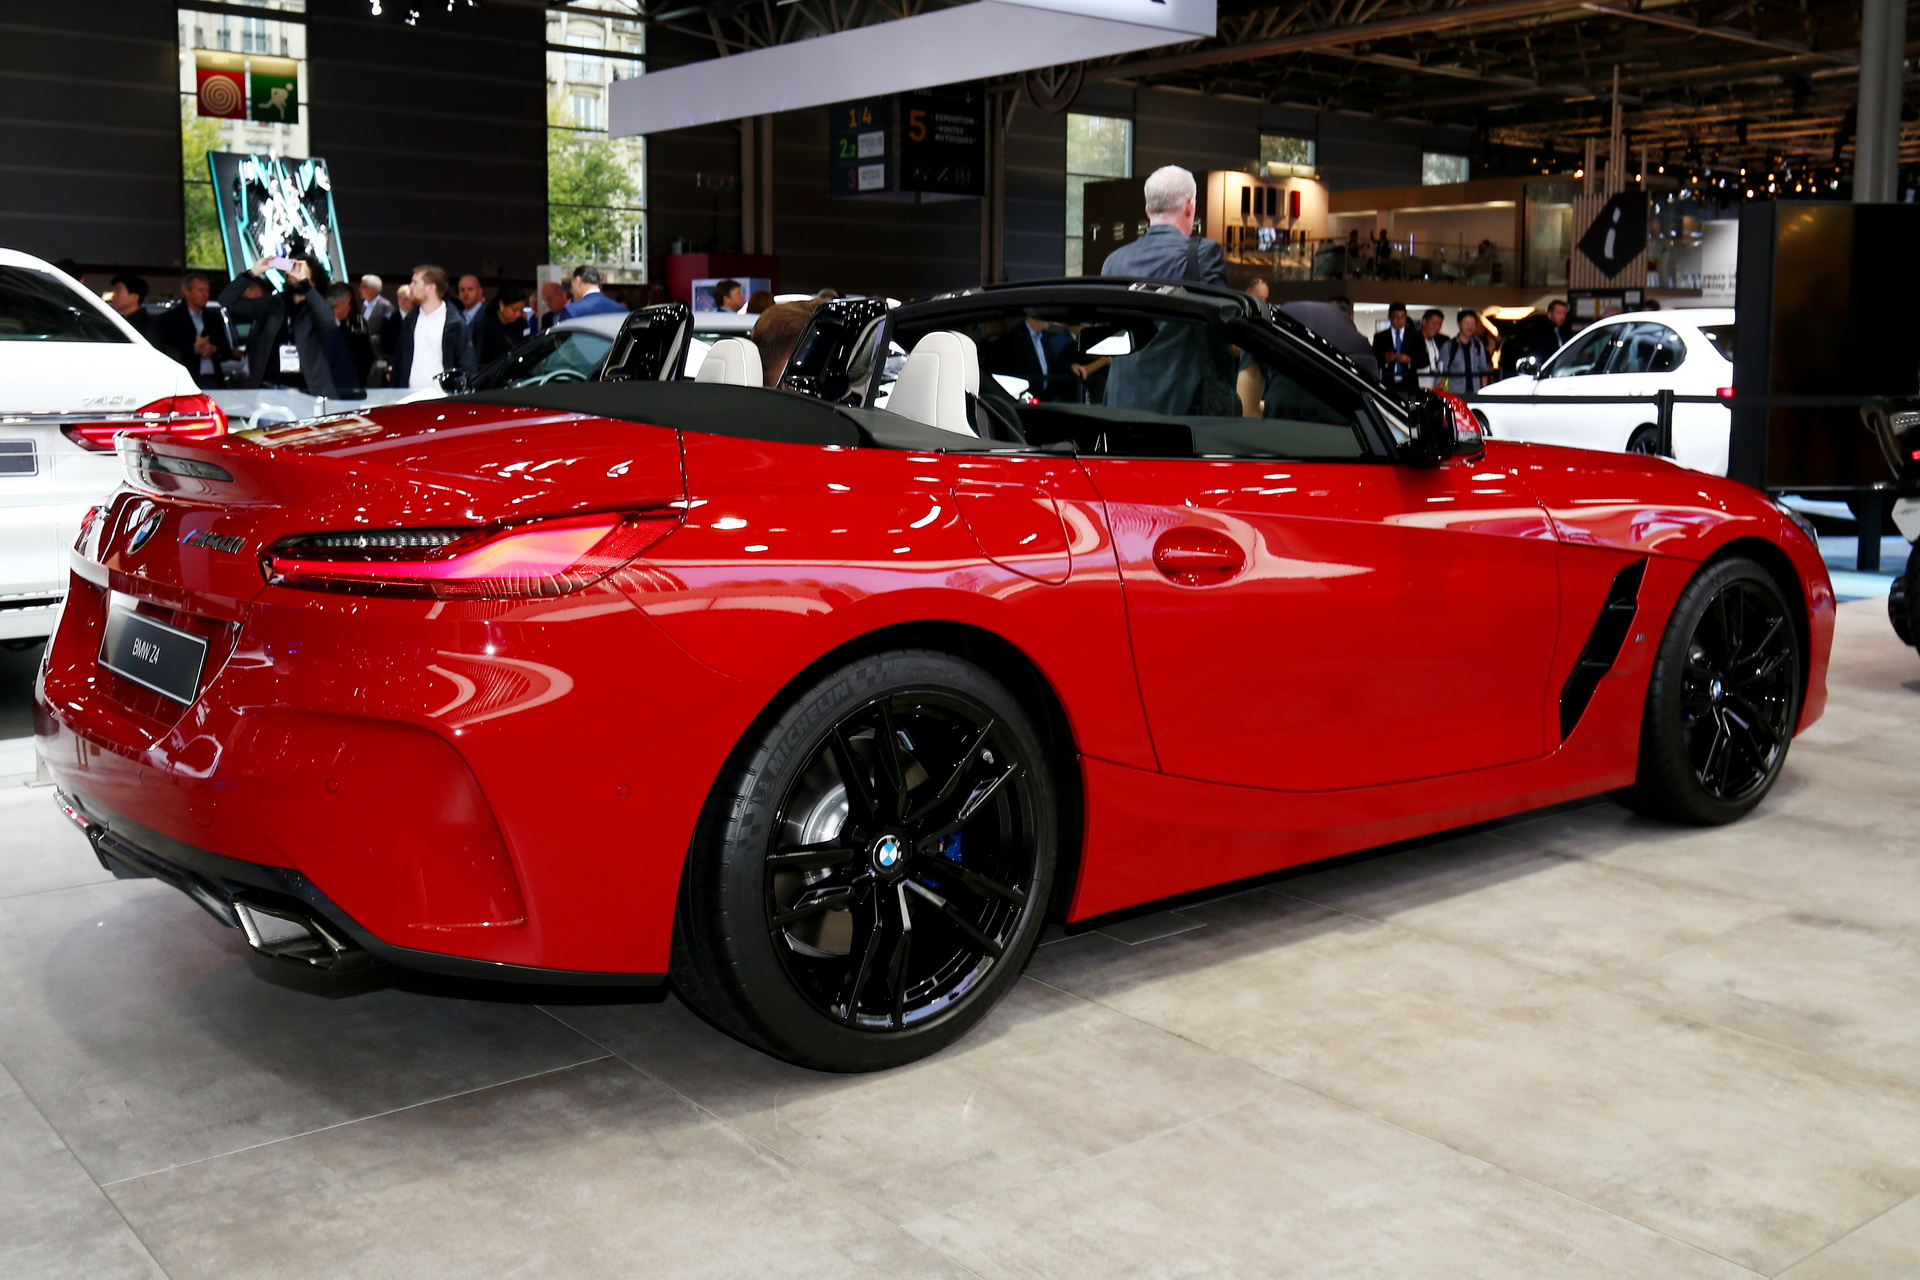 New Bmw Z4 Promises To Excite Drivers With Its Handling